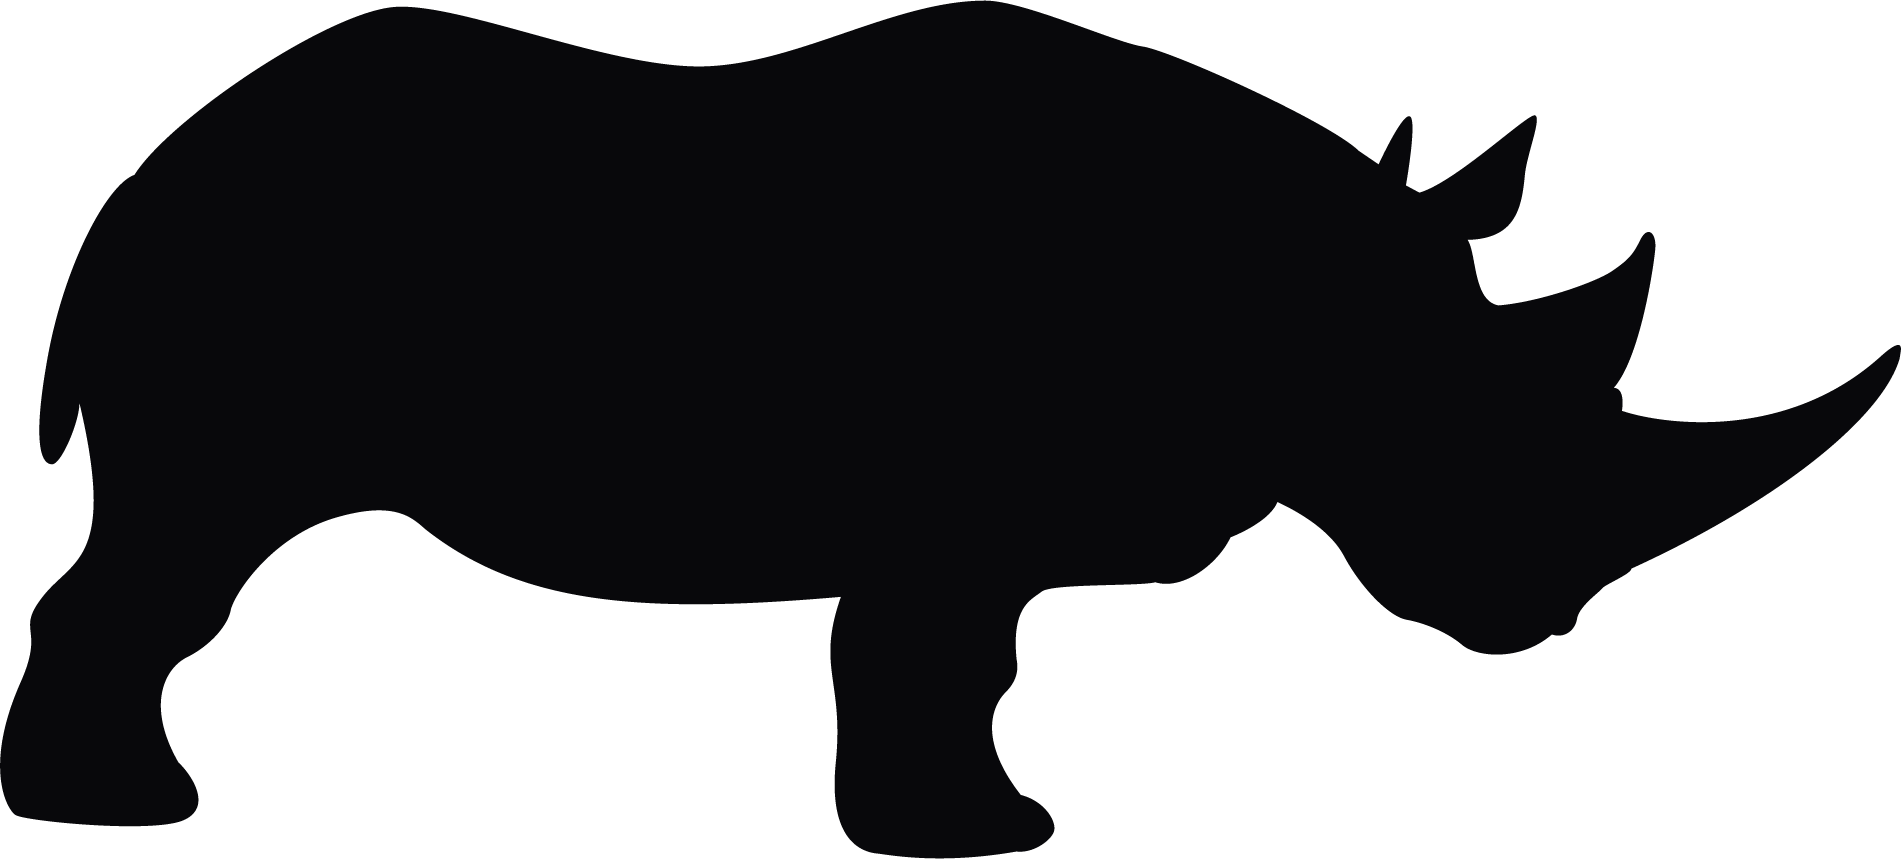 Drawing pandas rhino. Koala silhouette at getdrawings